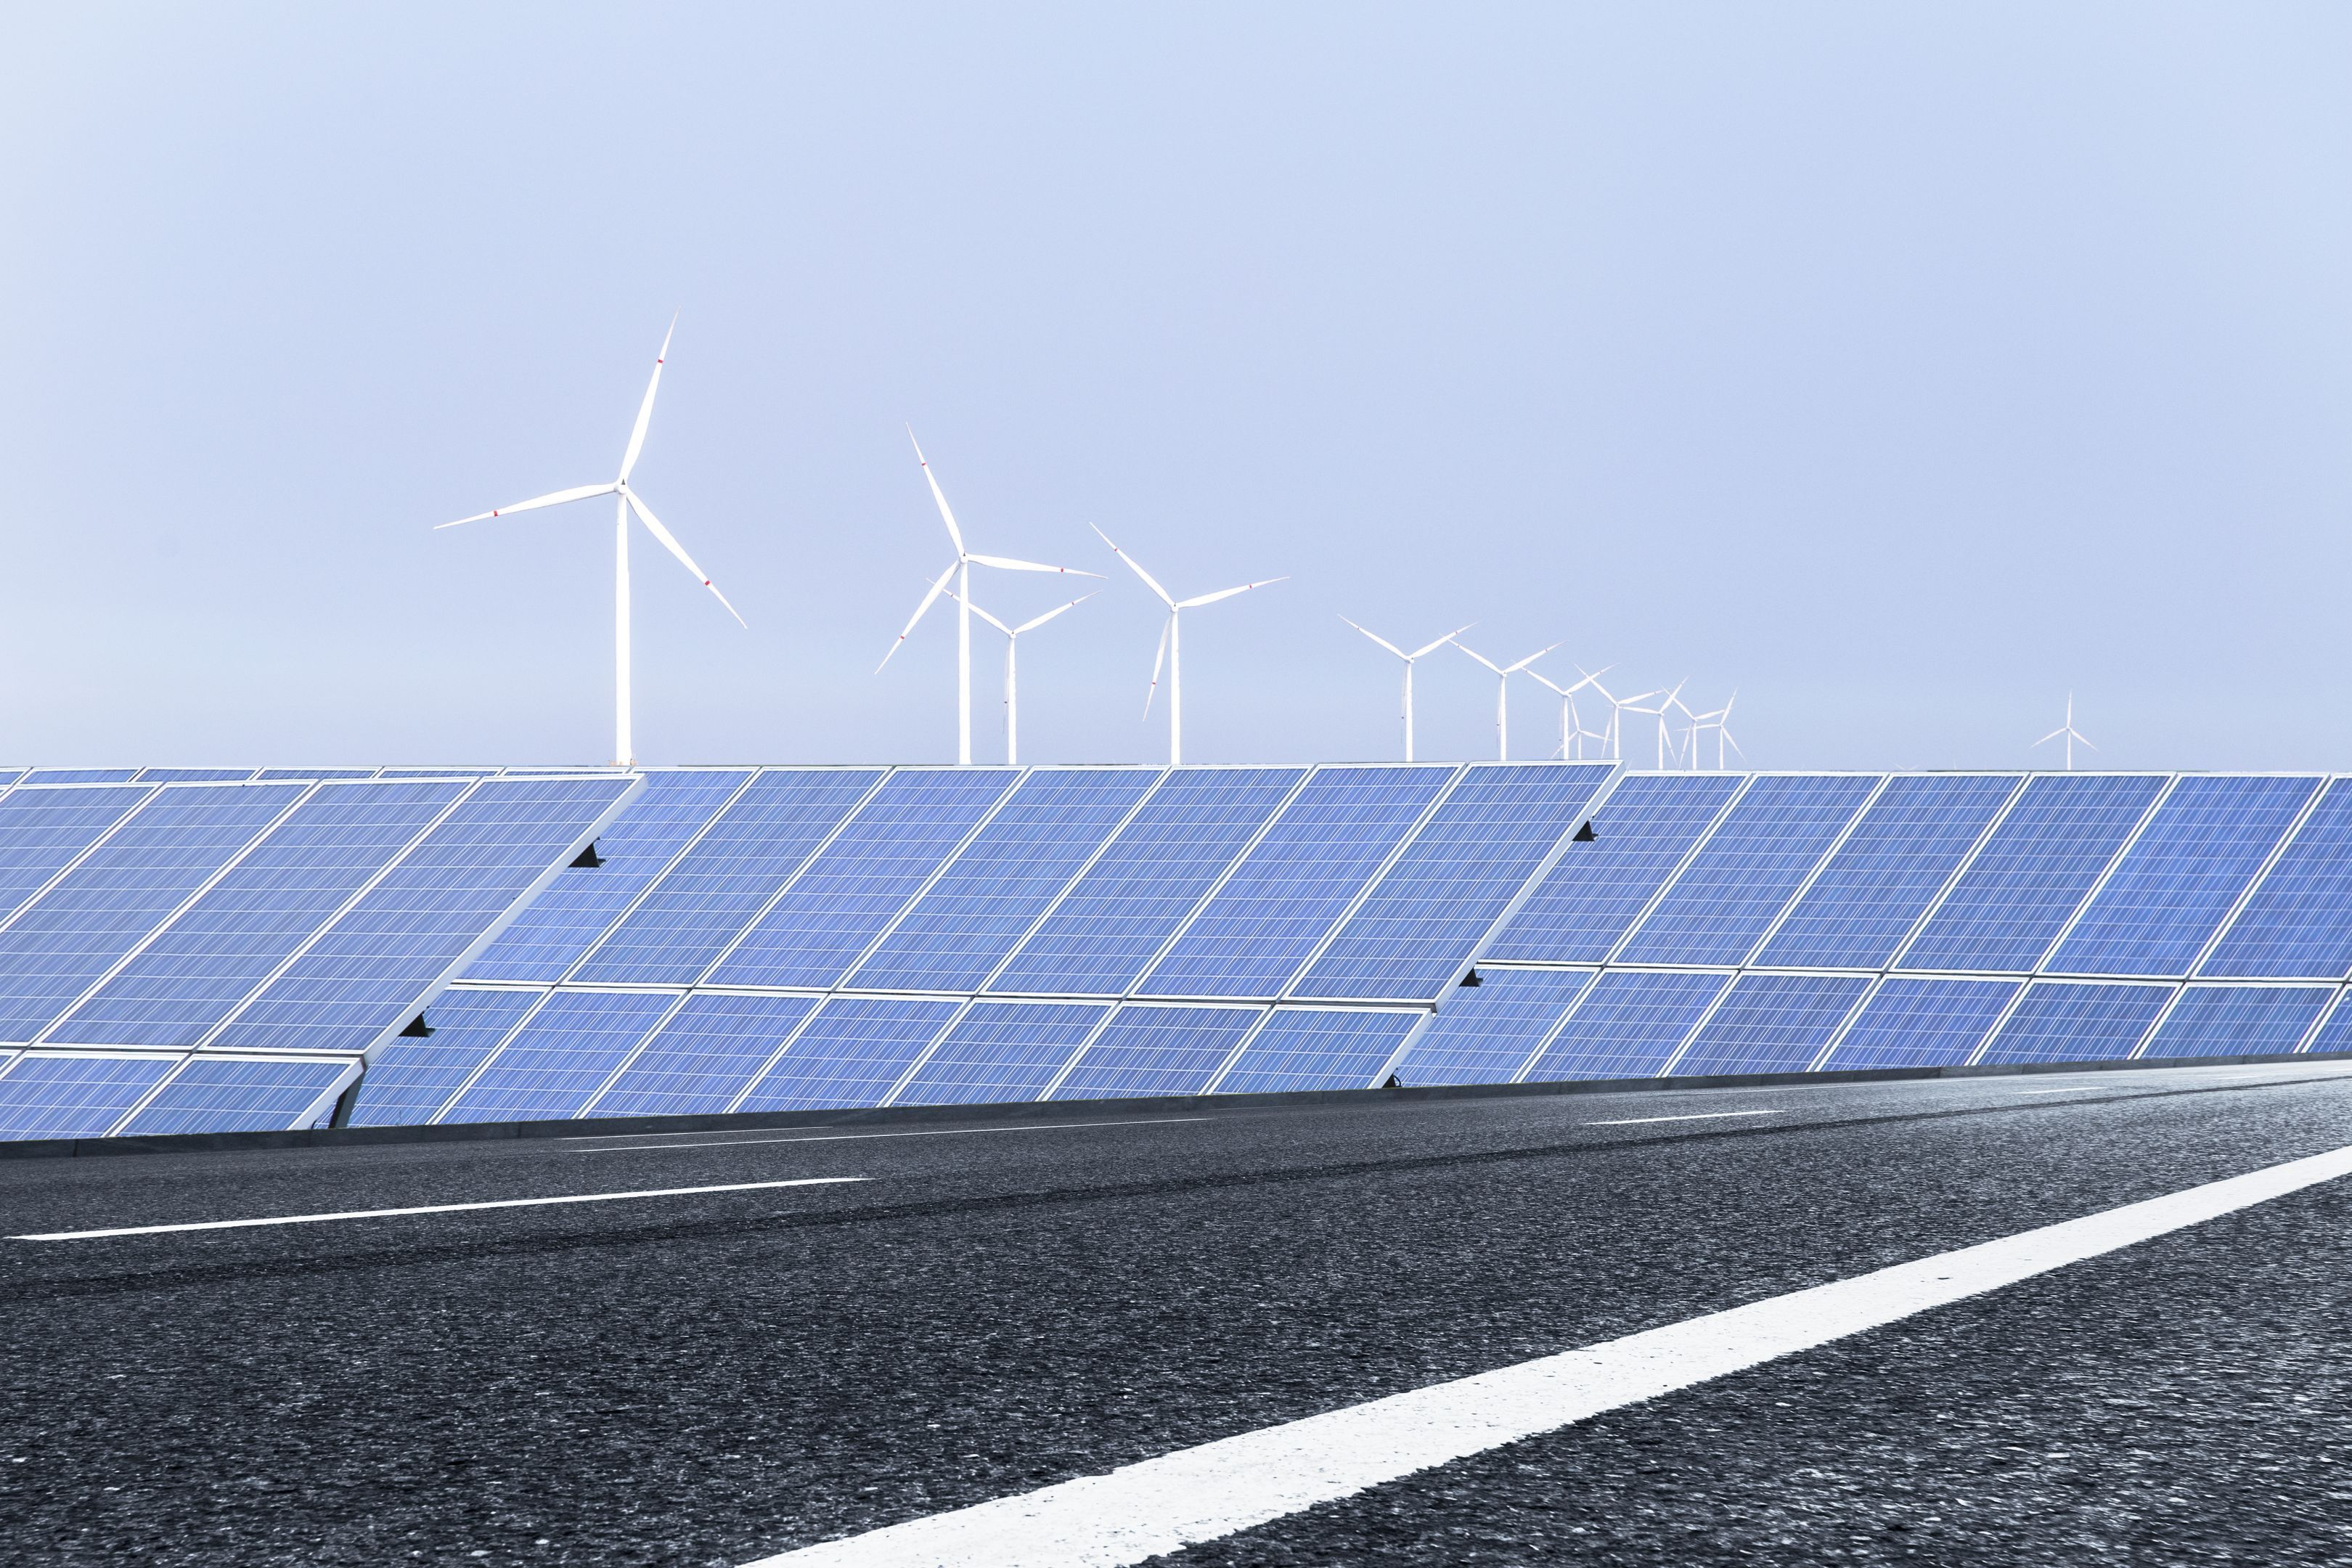 Solar and wind farm